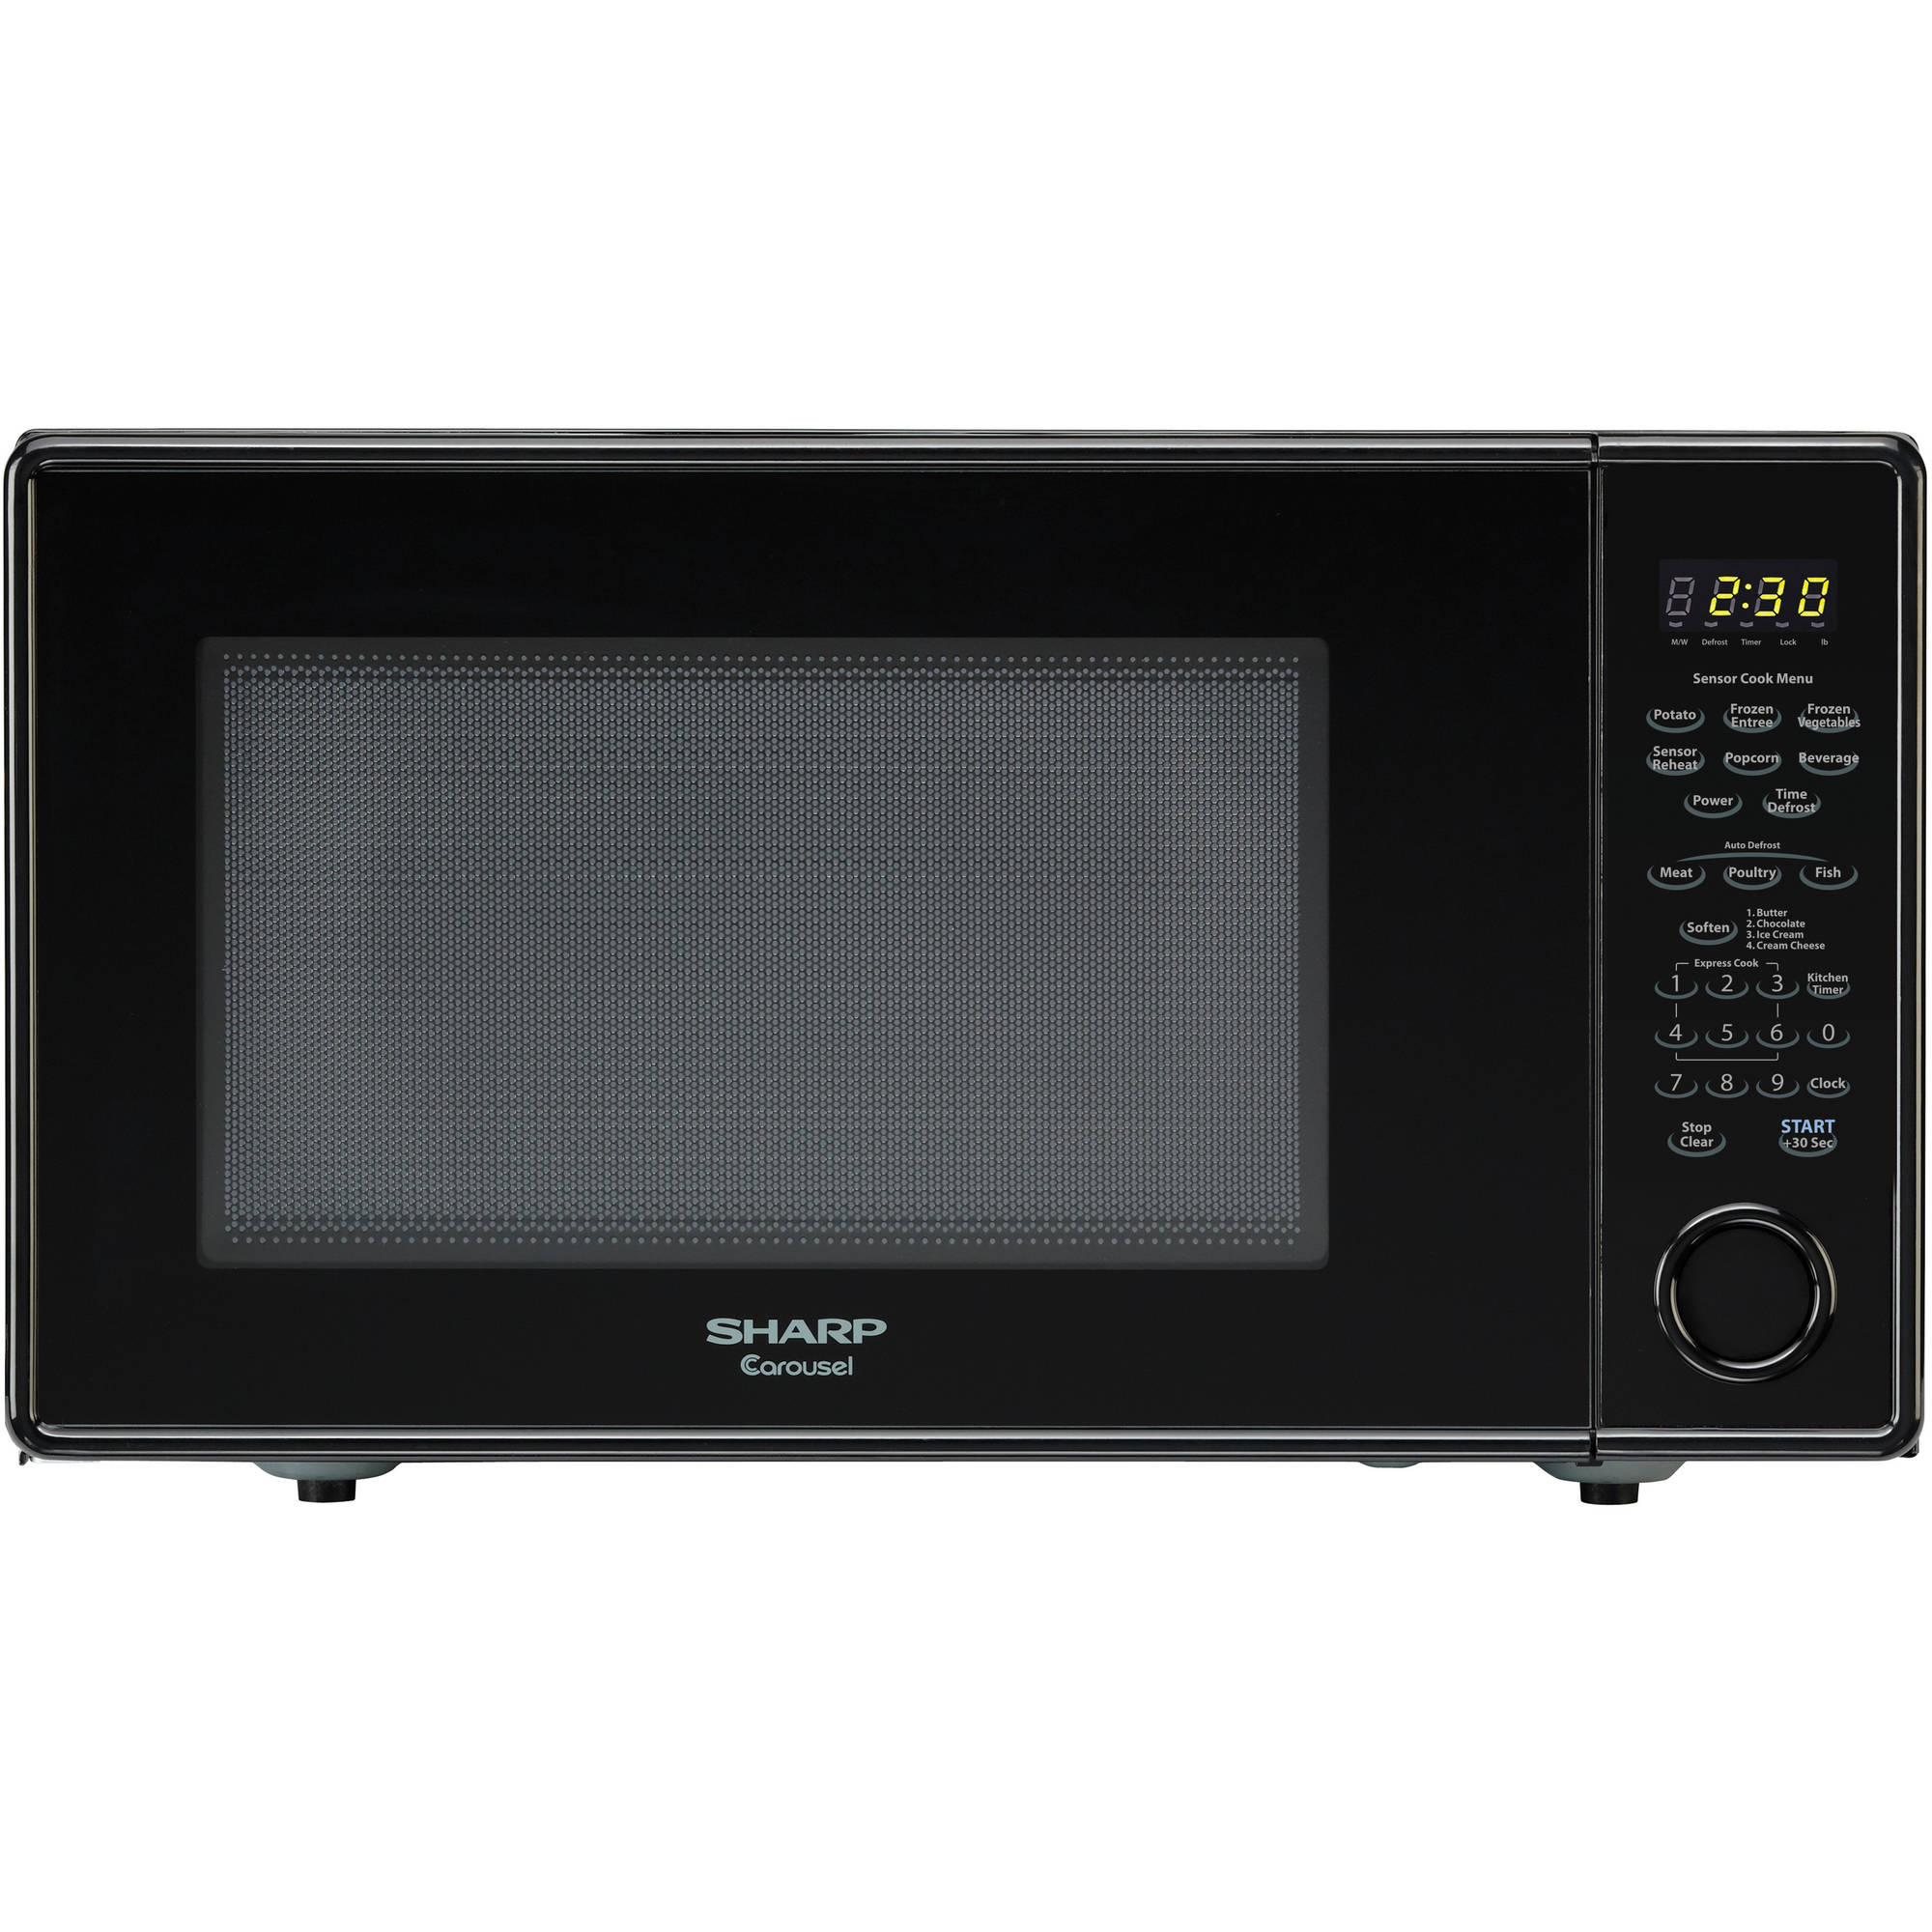 Sharp ZR559YK 1.8 Cu Ft Microwave, Black